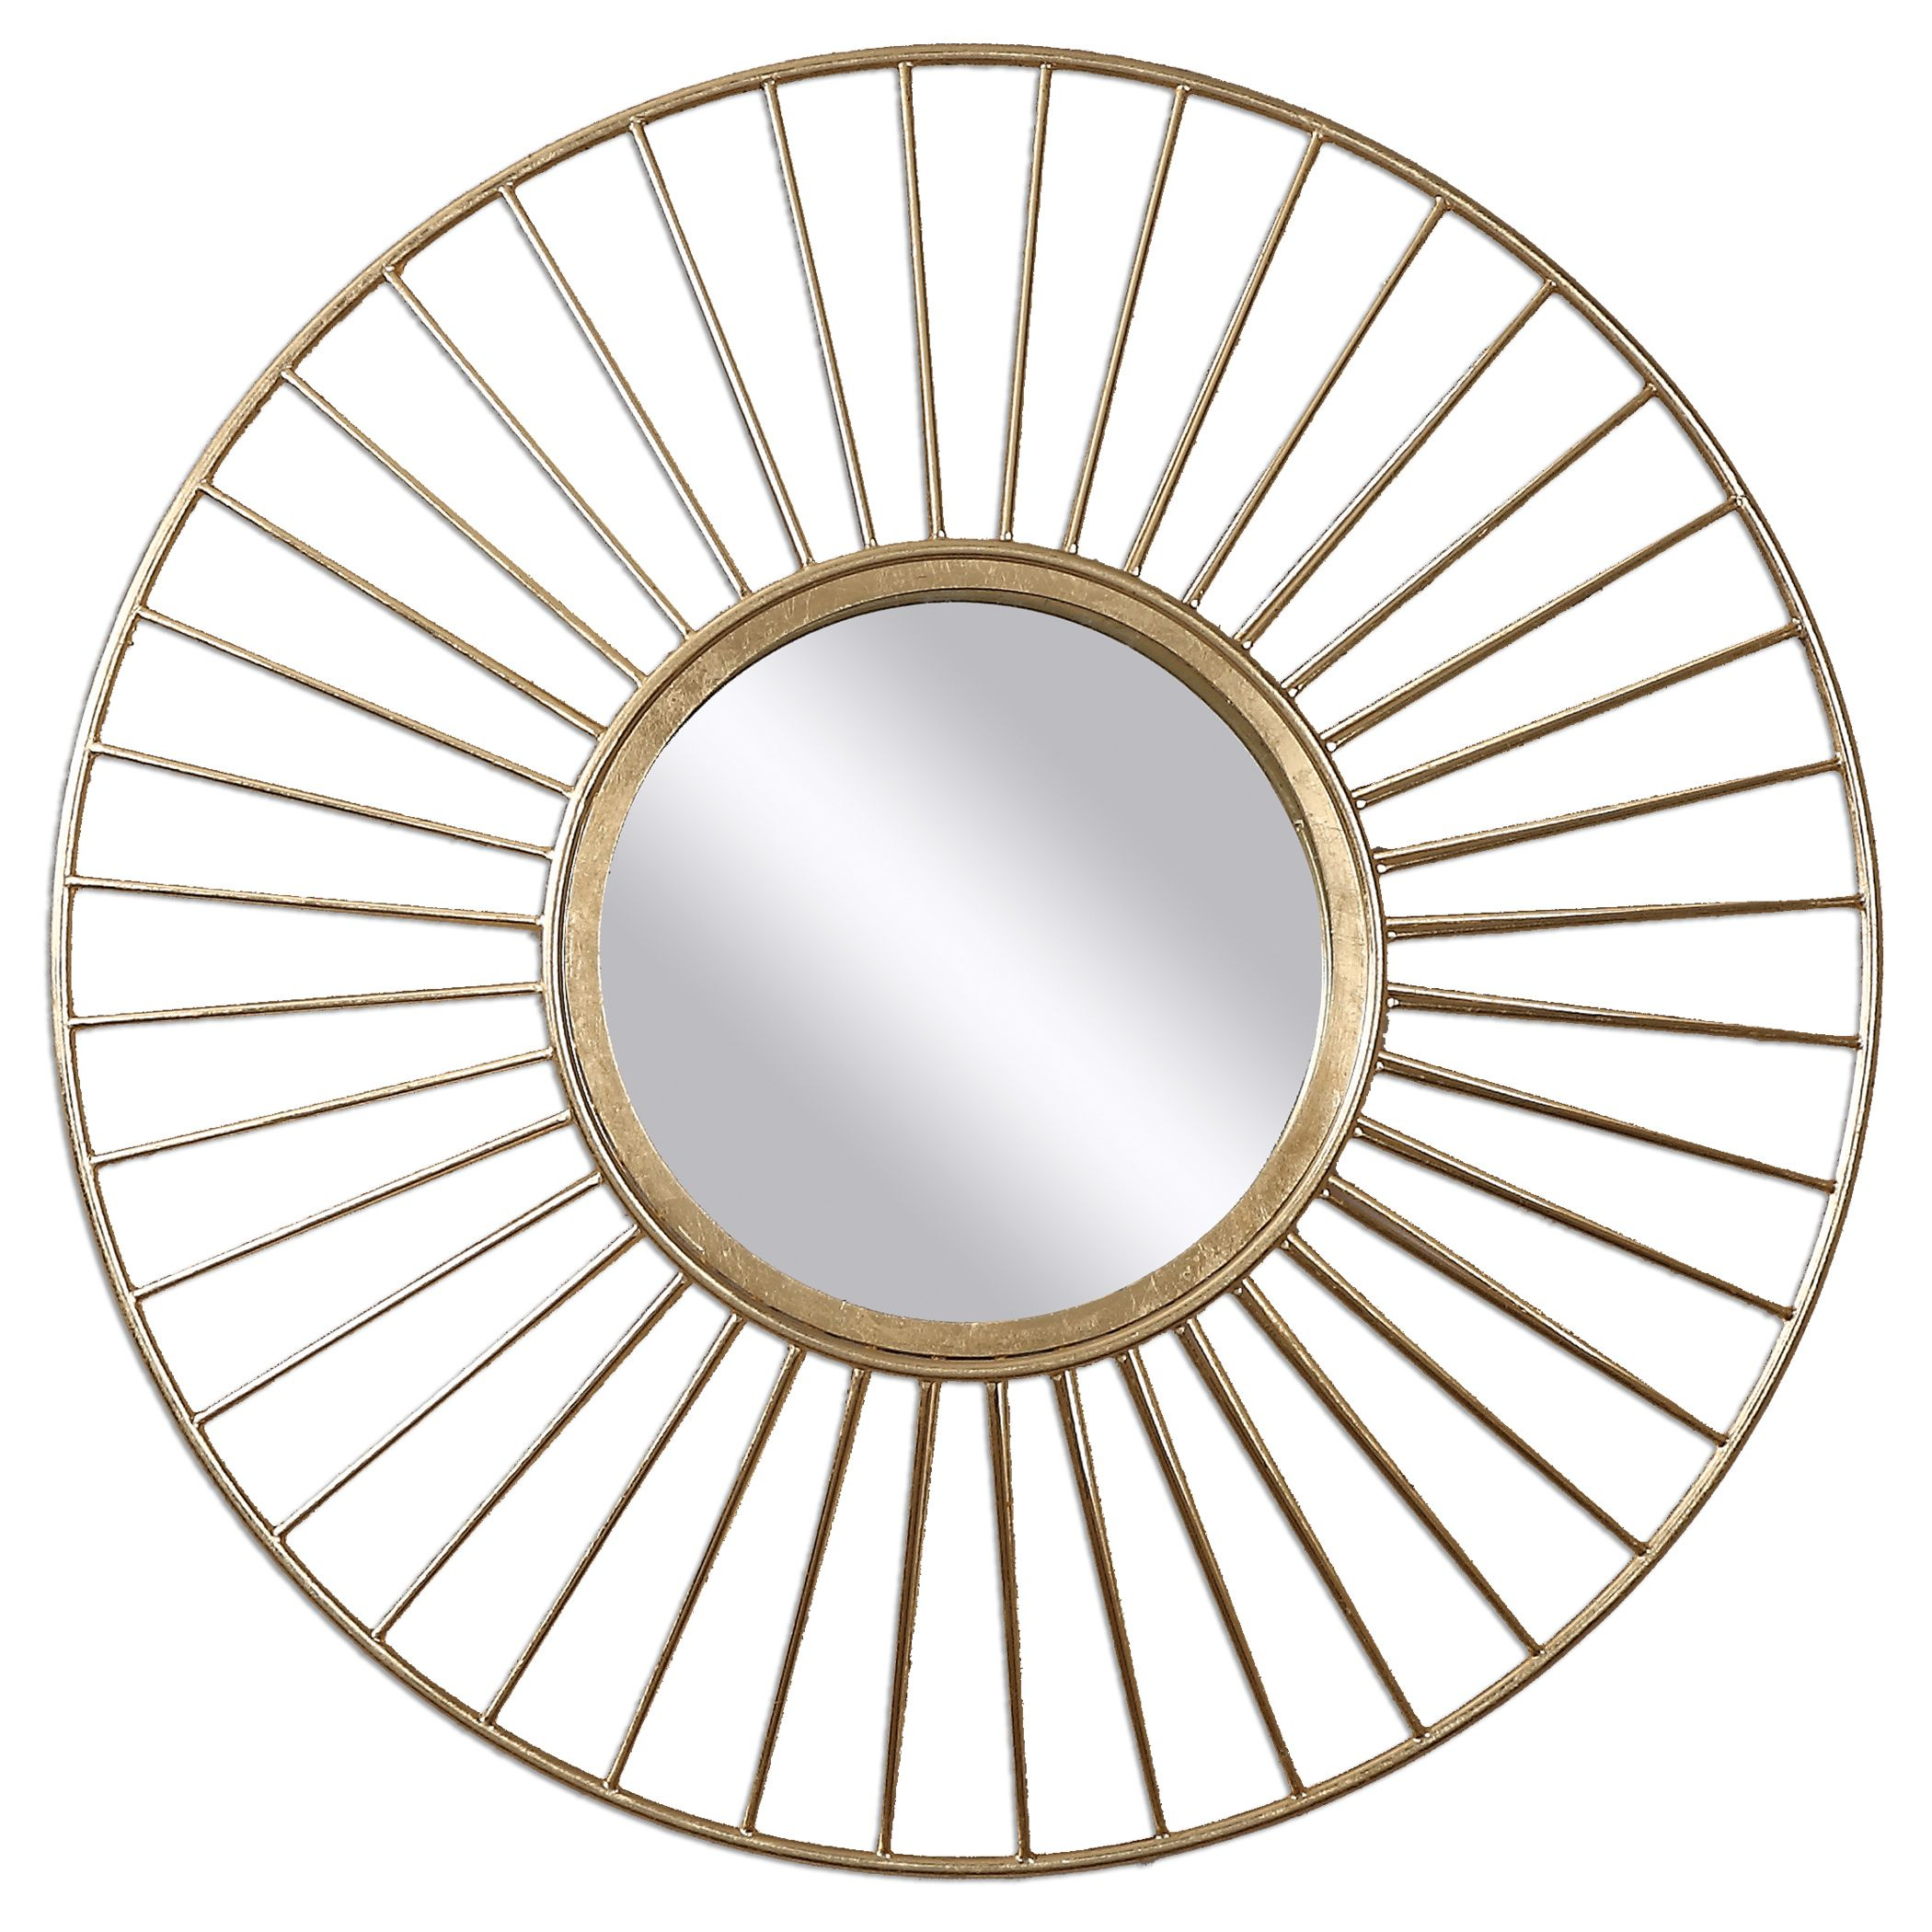 Home Decor: Classy Uttermost Mirror For Home Decor Regarding Sun Shaped Wall Mirrors (View 17 of 20)